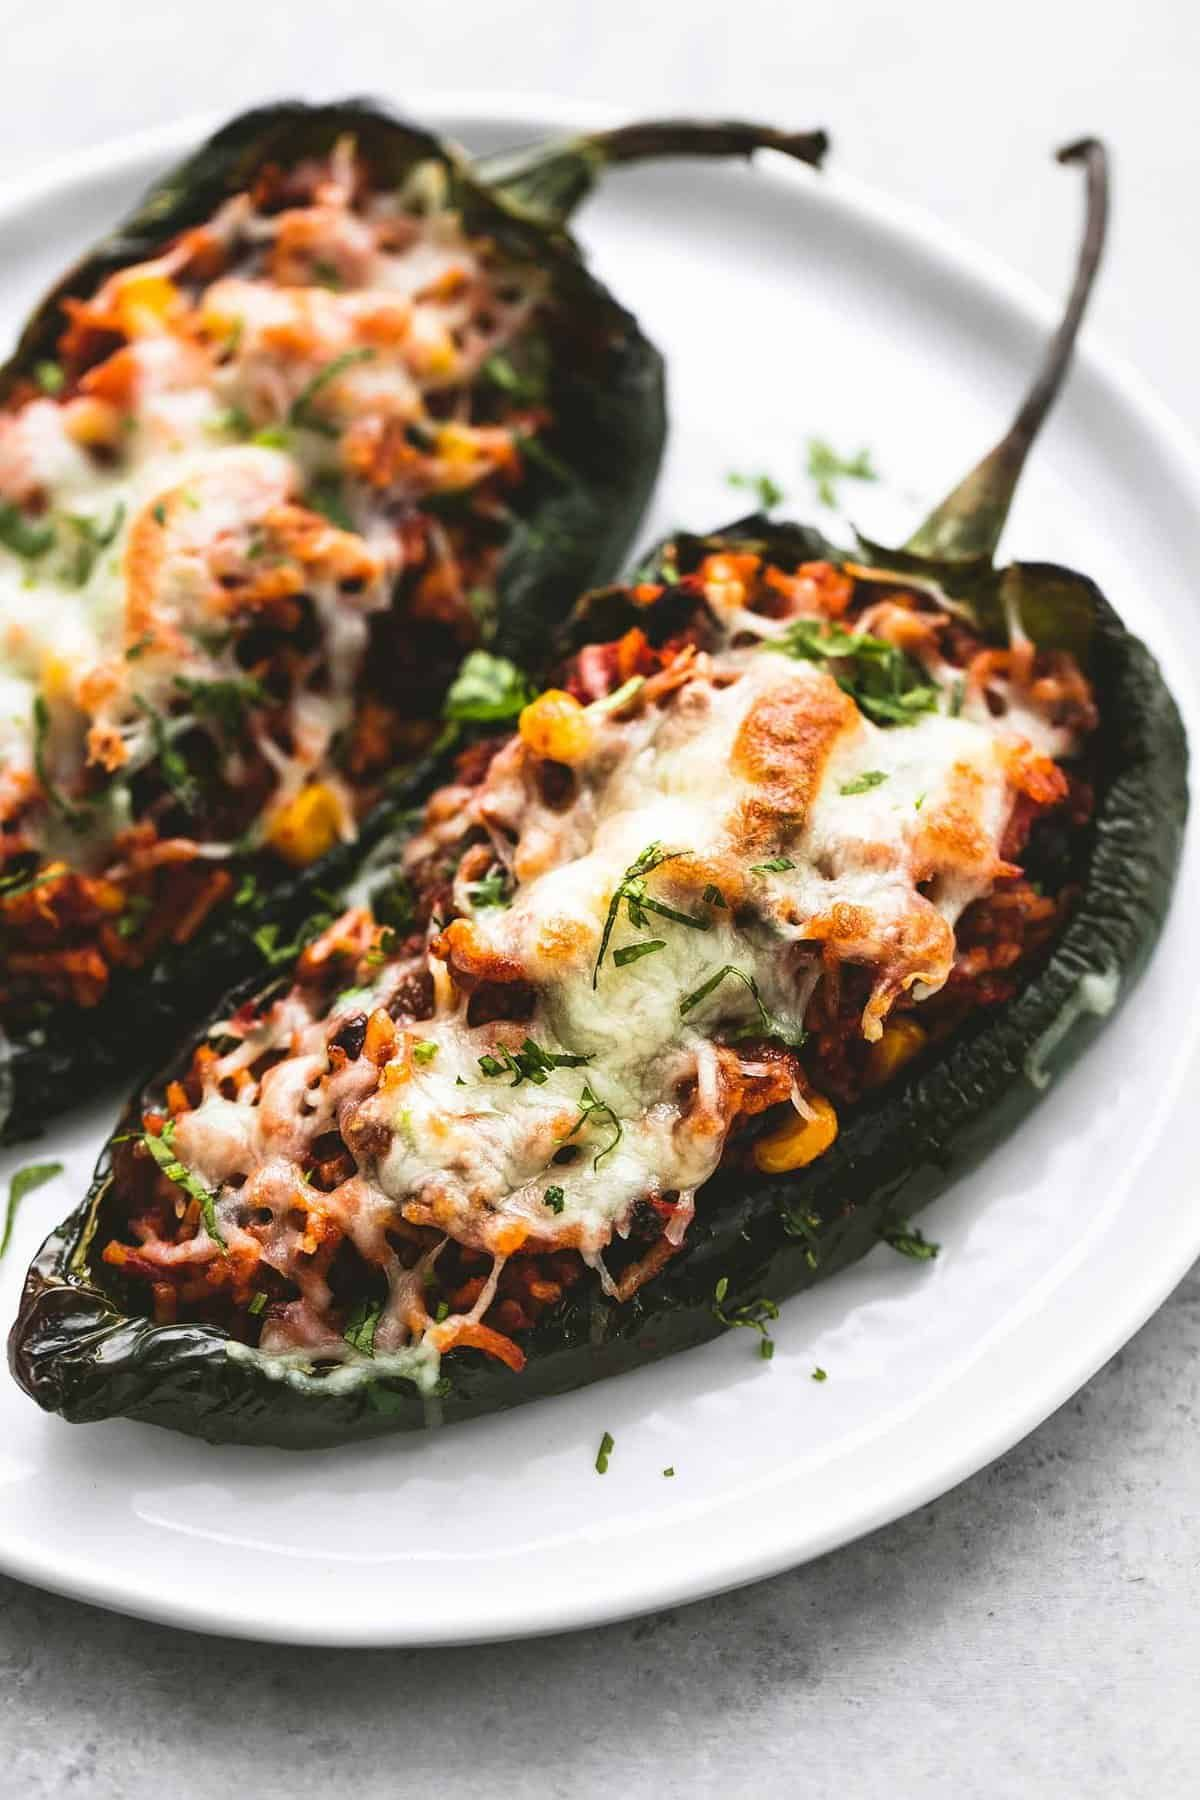 Beef Stuffed Poblano Chiles In 2020 Stuffed Peppers Recipes Peppers Recipes